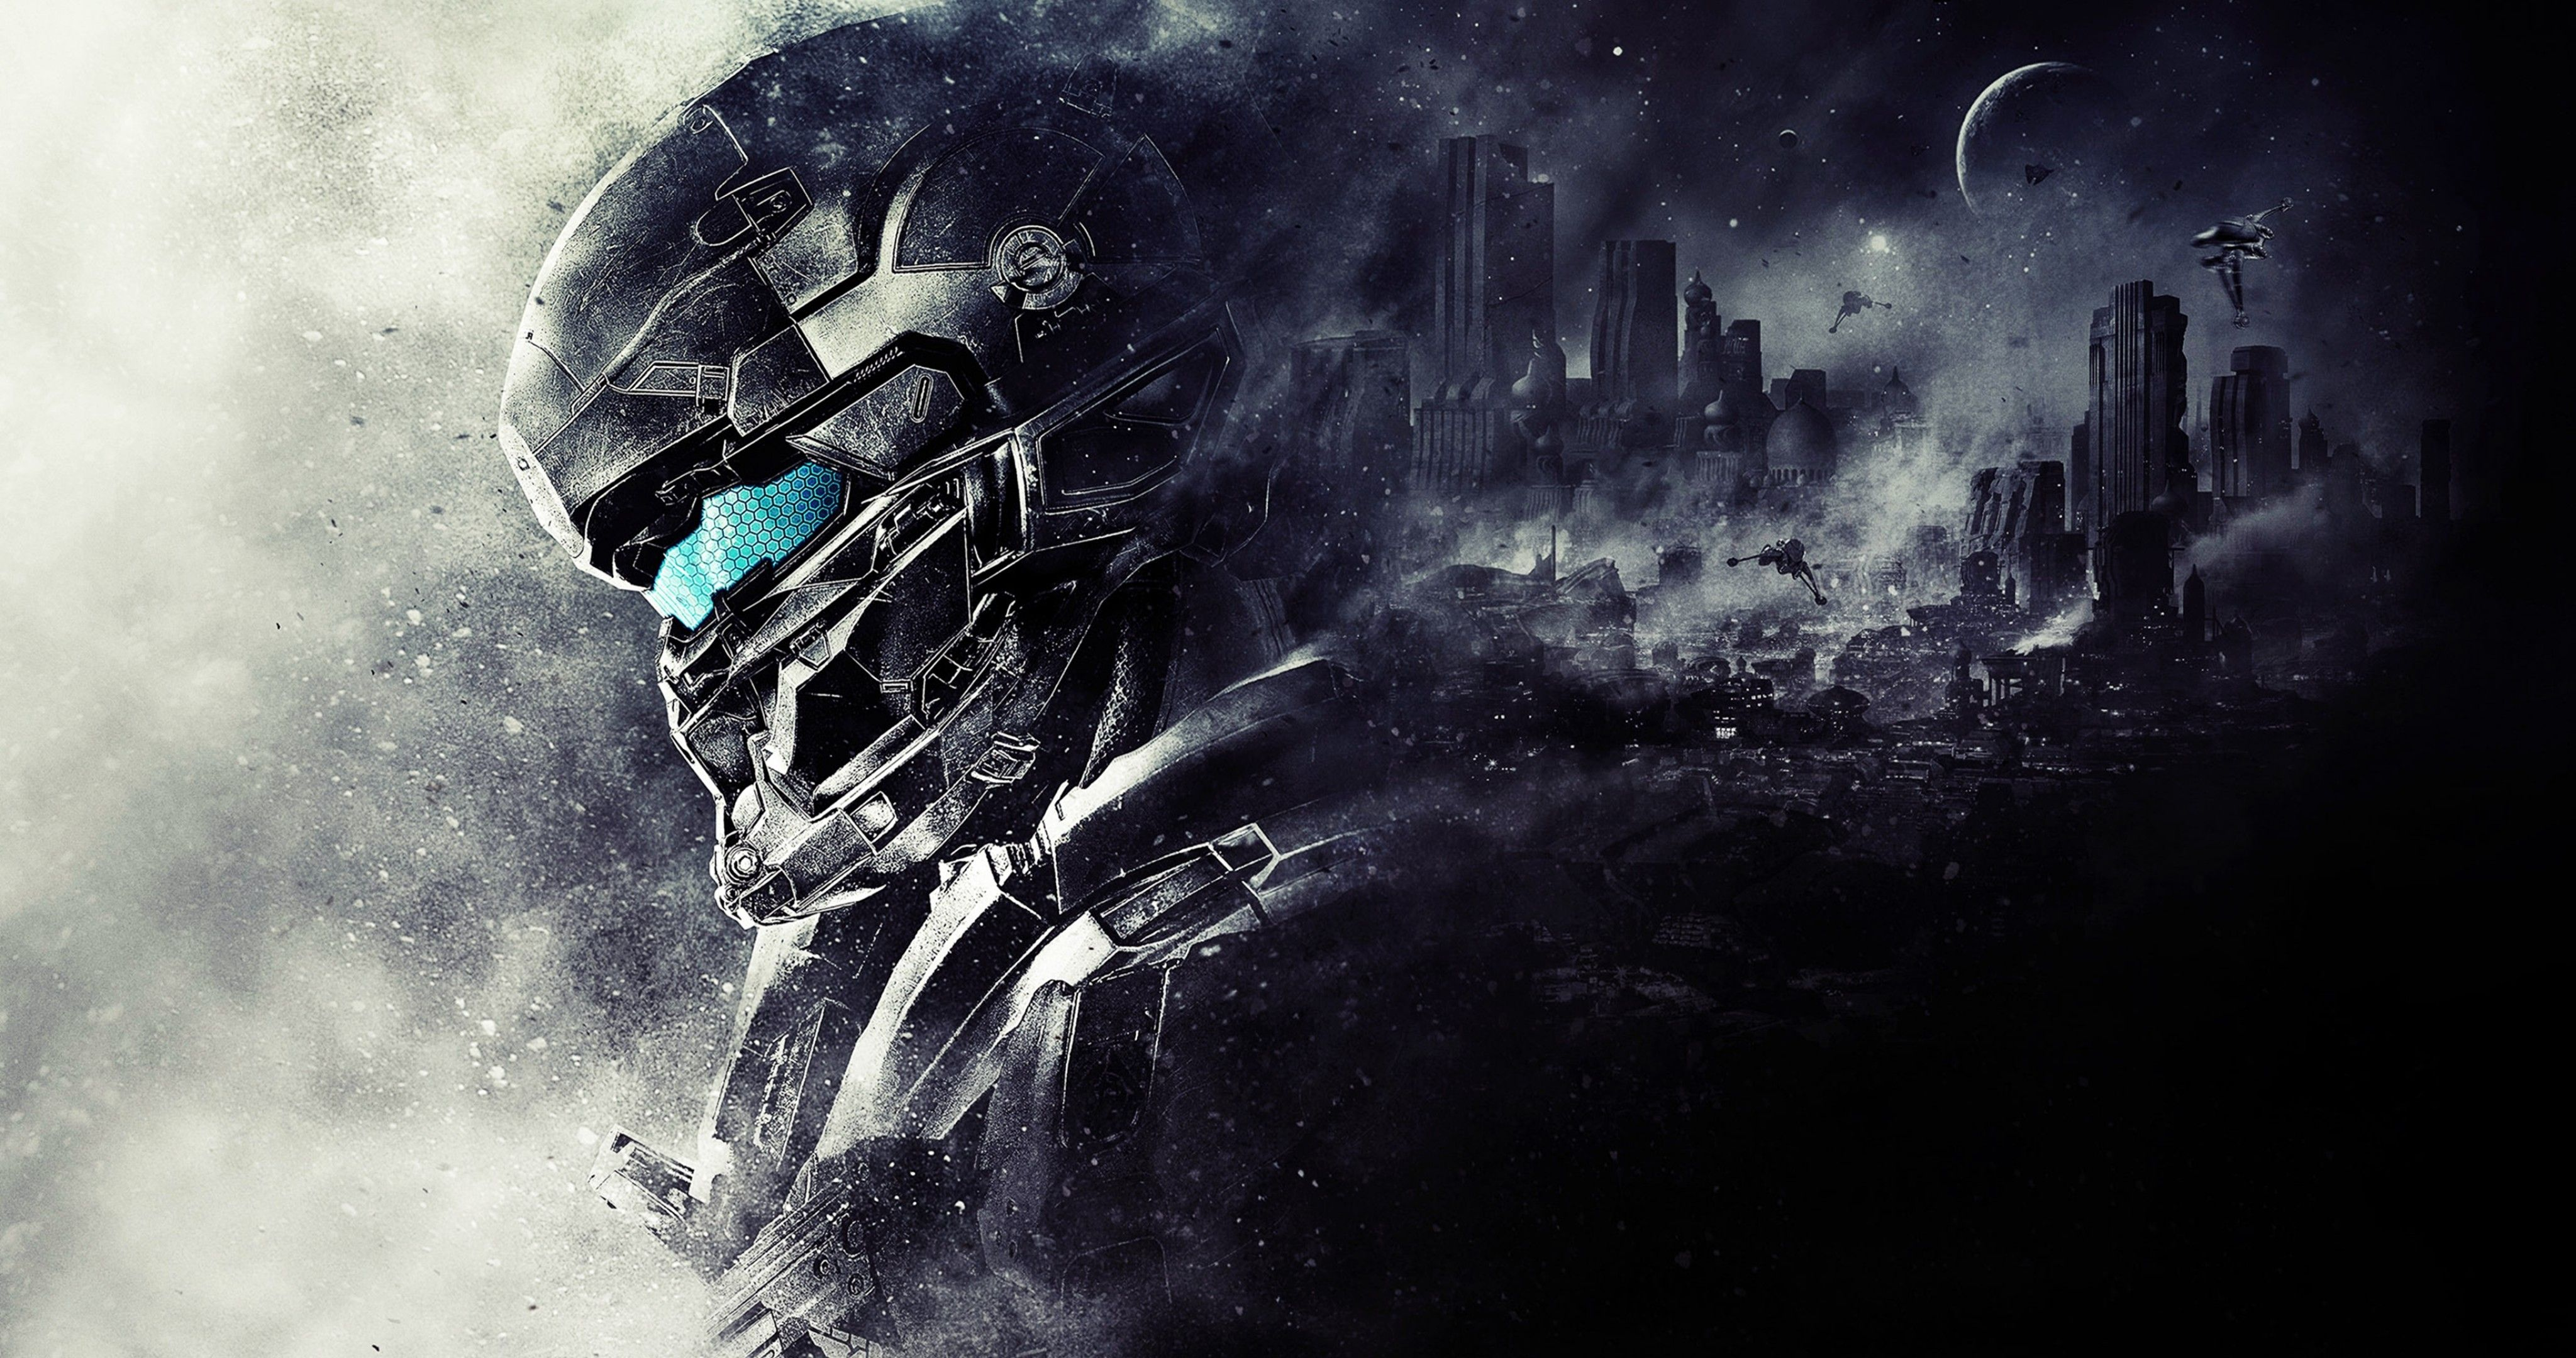 4k halo wallpapers top free 4k halo backgrounds wallpaperaccess - 4096x2160 wallpaper ...